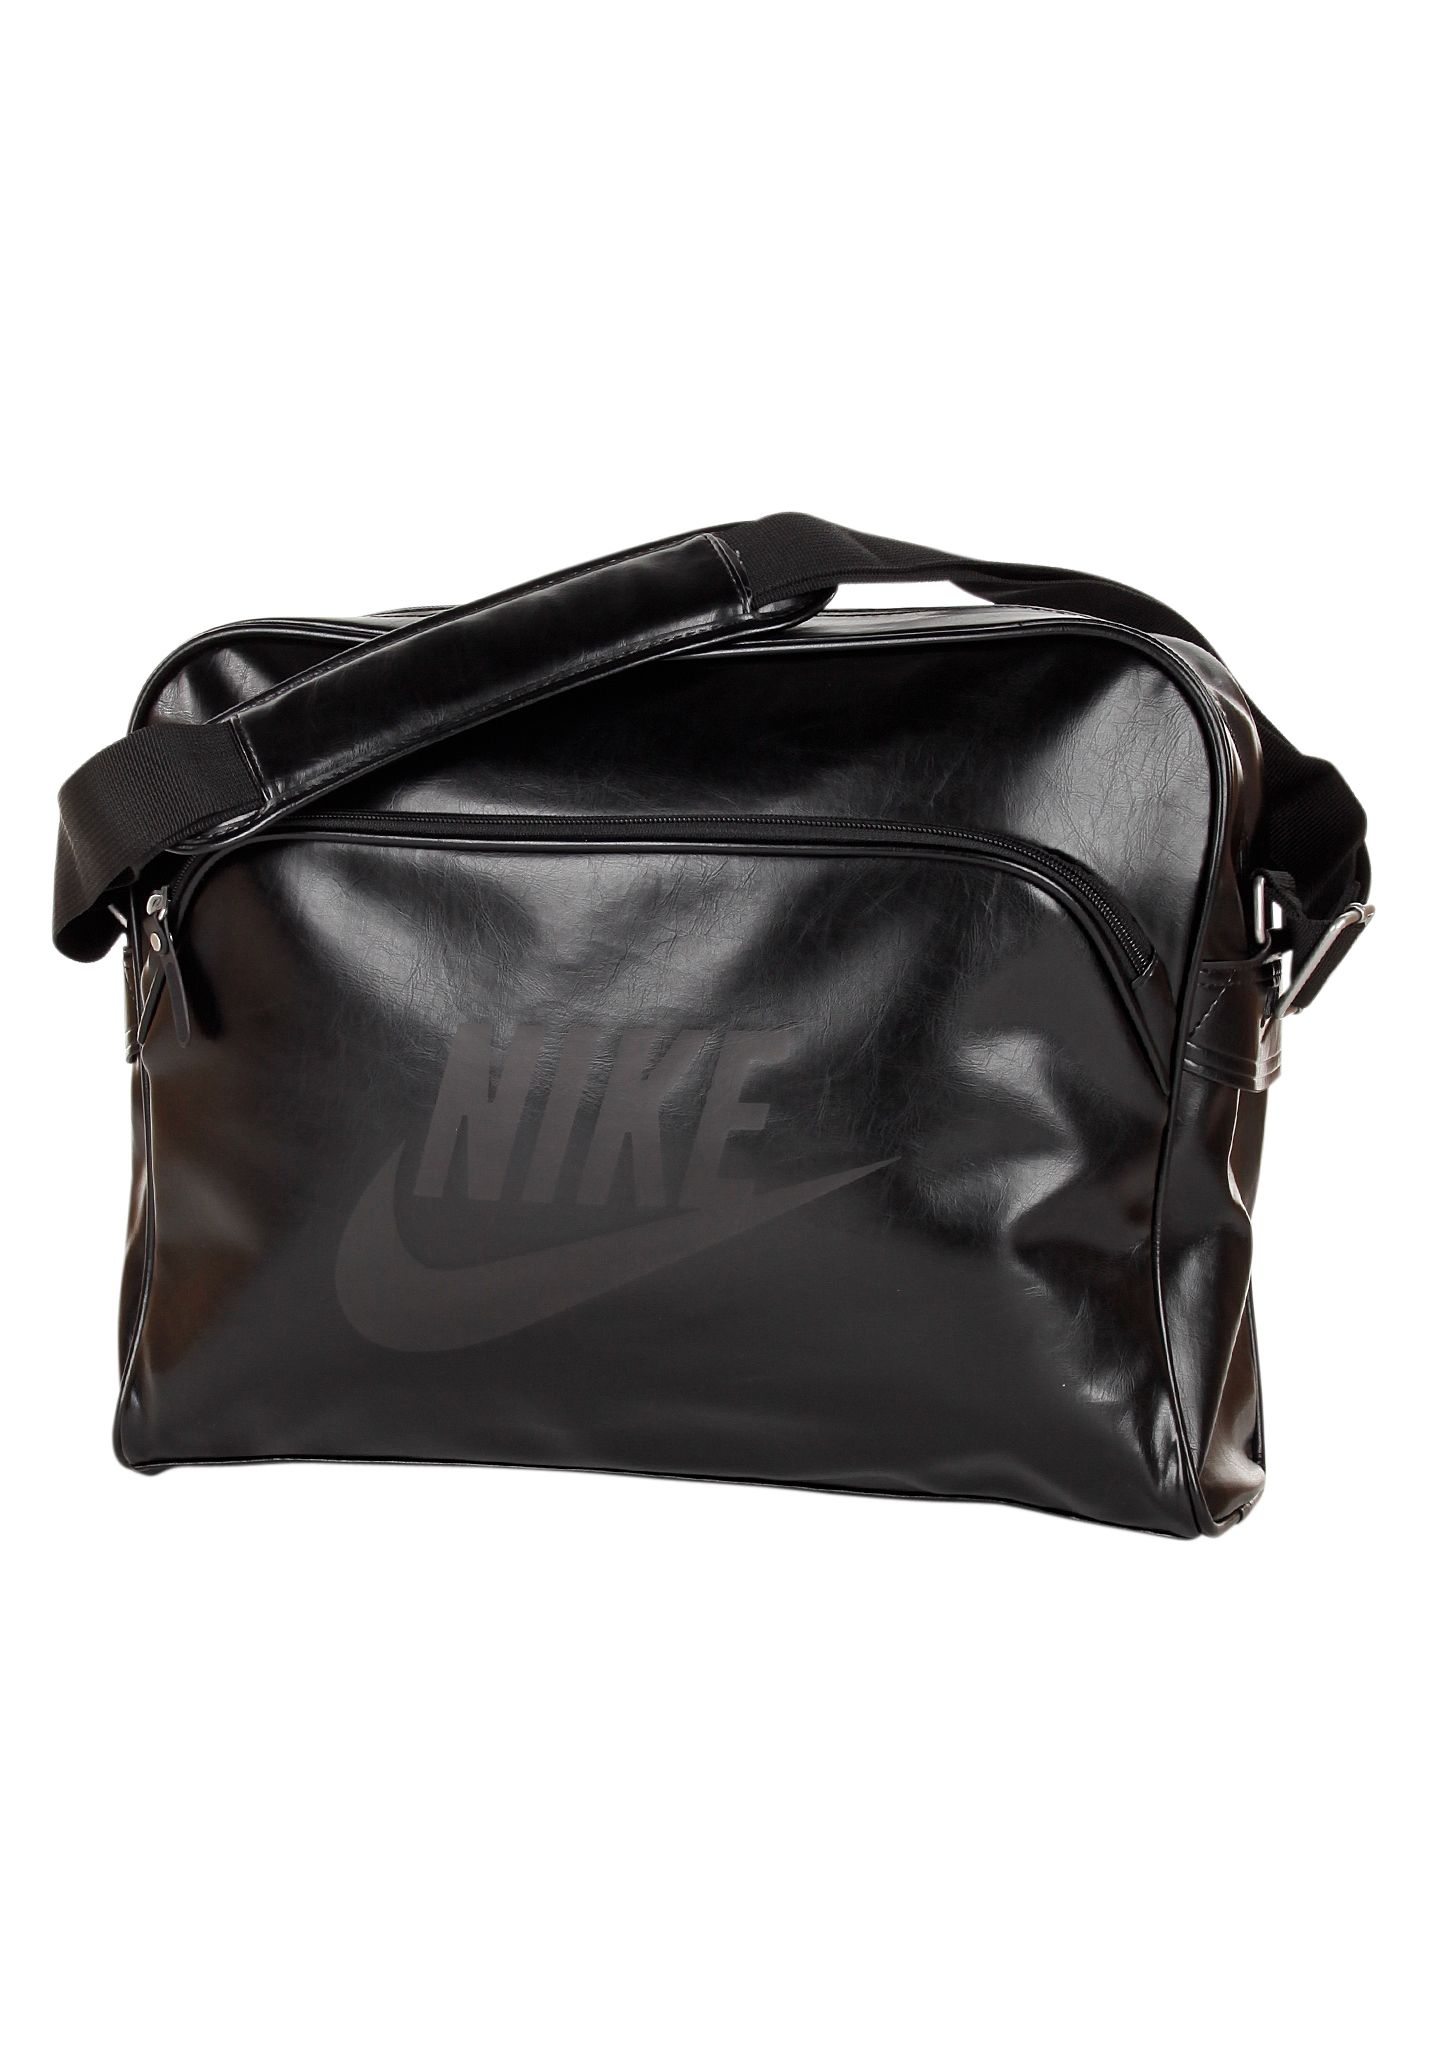 reputable site 81eea 21648 NIKE SPORTSWEAR Heritage SI Track Bag - Messenger Bag for Men - Black -  Planet Sports